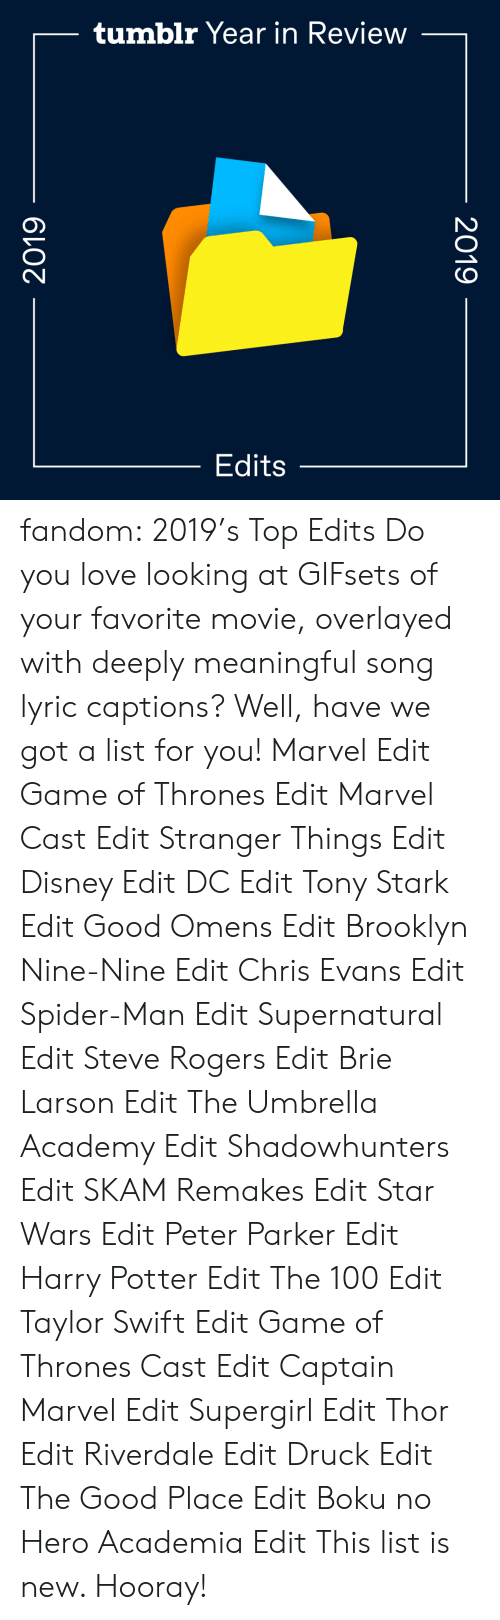 stark: tumblr Year in Review  Edits  2019  2019 fandom:  2019's Top Edits  Do you love looking at GIFsets of your favorite movie, overlayed with deeply meaningful song lyric captions? Well, have we got a list for you!  Marvel Edit  Game of Thrones Edit  Marvel Cast Edit  Stranger Things Edit  Disney Edit  DC Edit  Tony Stark Edit  Good Omens Edit  Brooklyn Nine-Nine Edit  Chris Evans Edit  Spider-Man Edit  Supernatural Edit  Steve Rogers Edit  Brie Larson Edit  The Umbrella Academy Edit  Shadowhunters Edit  SKAM Remakes Edit  Star Wars Edit  Peter Parker Edit  Harry Potter Edit  The 100 Edit  Taylor Swift Edit  Game of Thrones Cast Edit  Captain Marvel Edit  Supergirl Edit  Thor Edit  Riverdale Edit  Druck Edit  The Good Place Edit  Boku no Hero Academia Edit This list is new. Hooray!